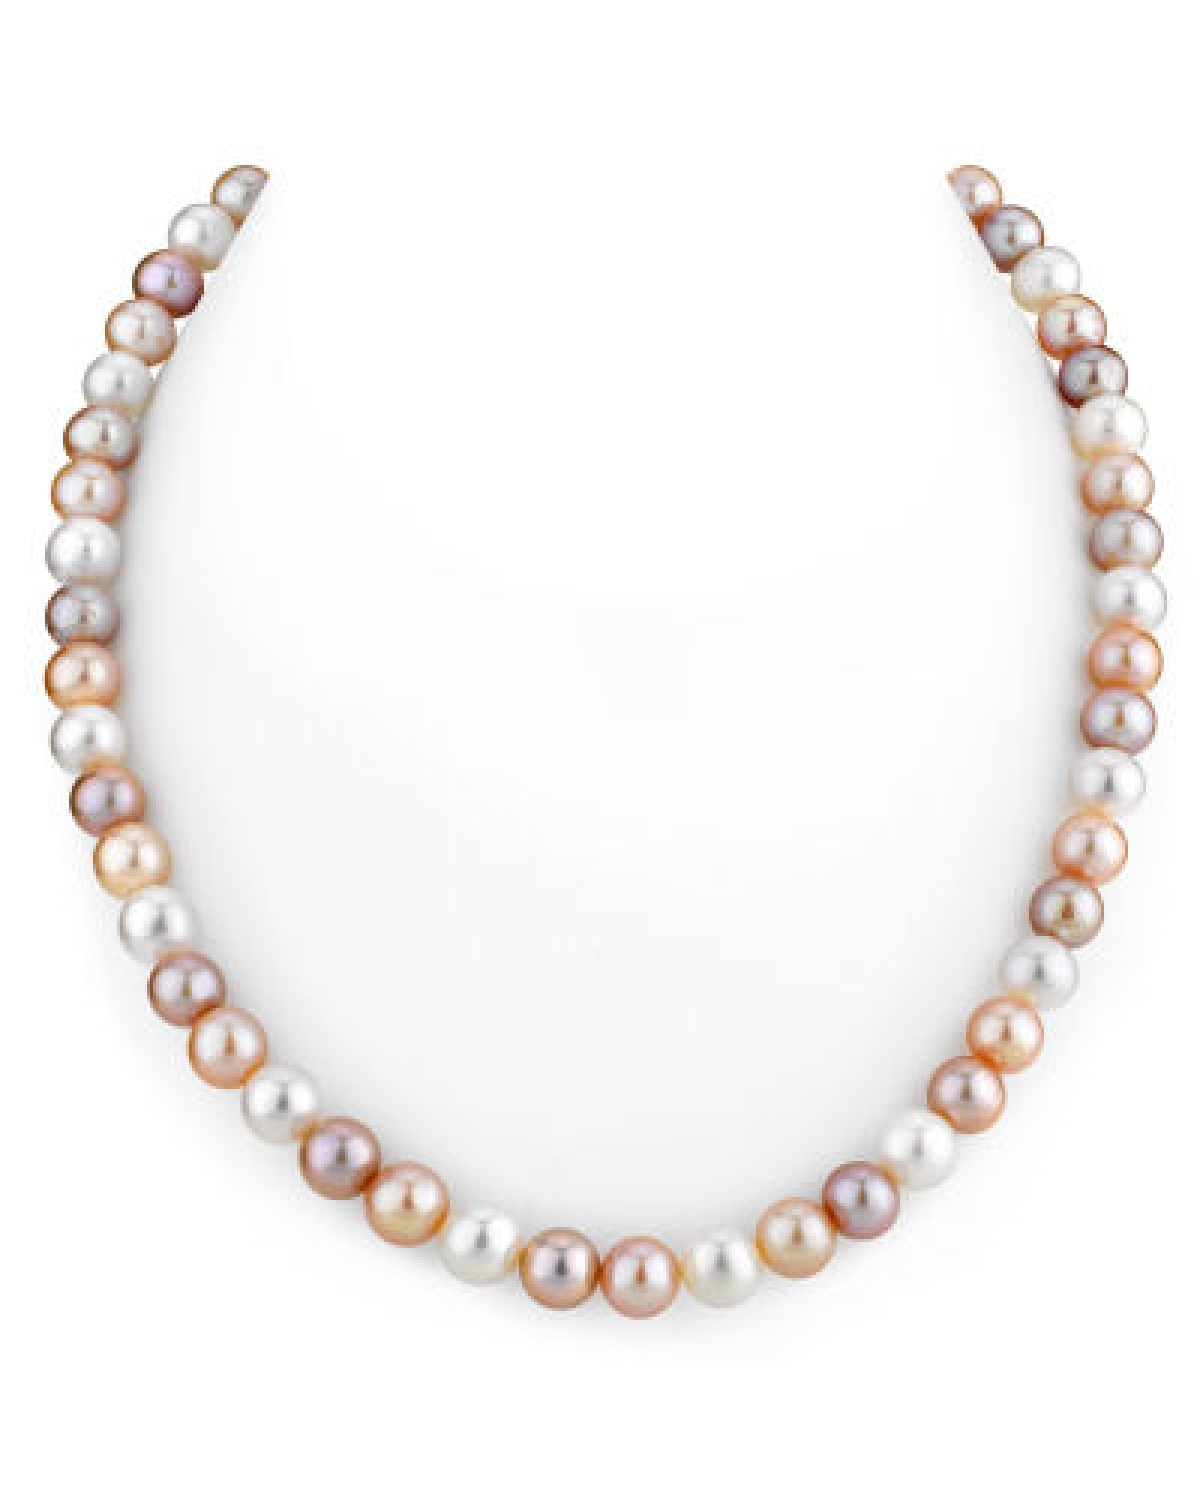 7-8mm Freshwater Multicolor Pearl Necklace - AAAA Quality